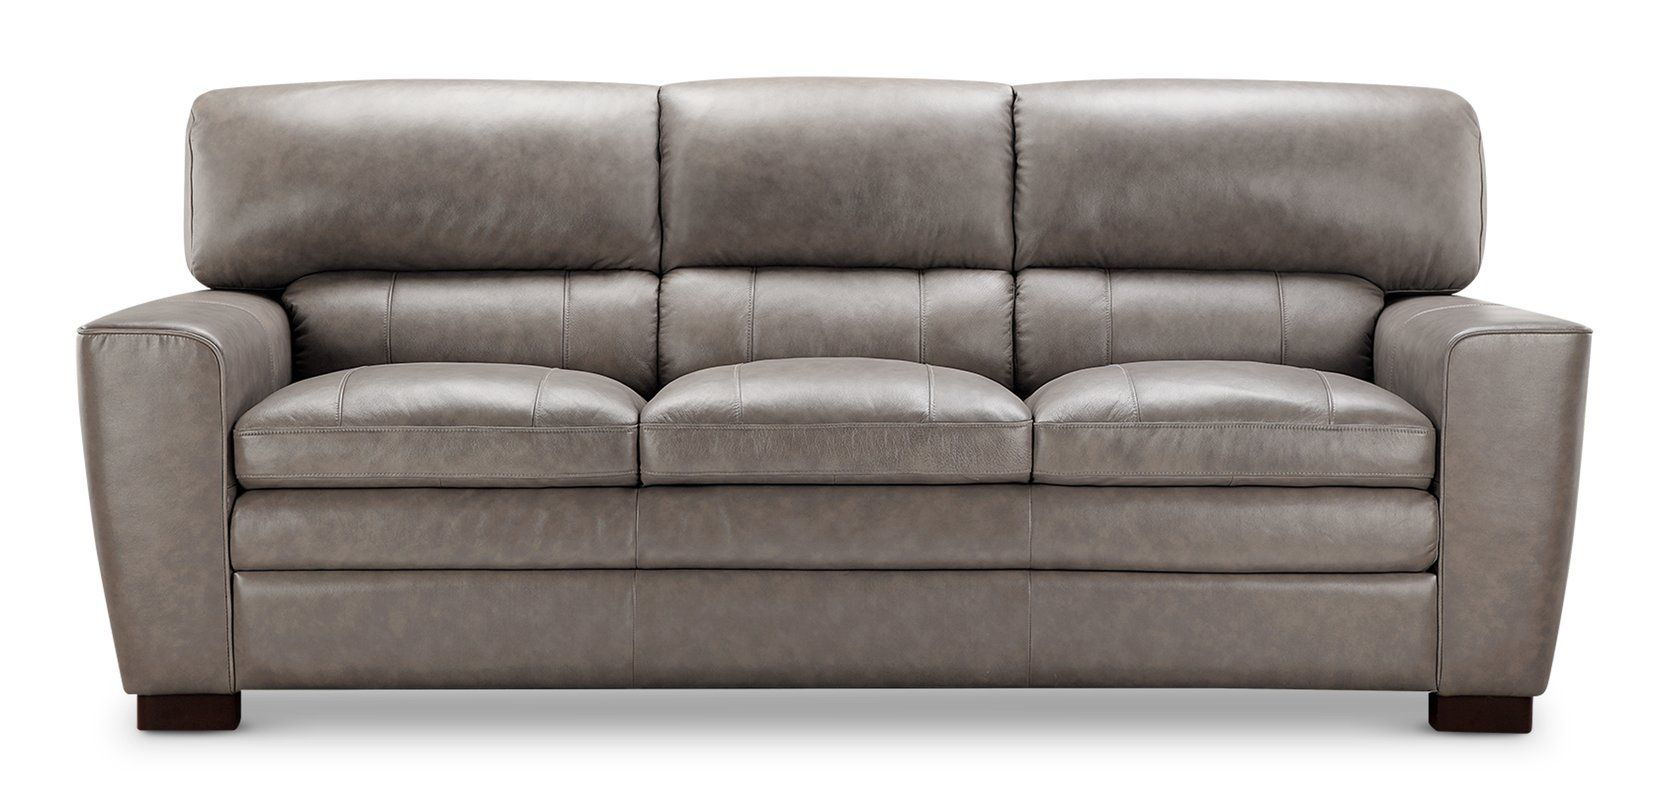 Desire To Purchase Cort Leather Sofa By 17 Stories